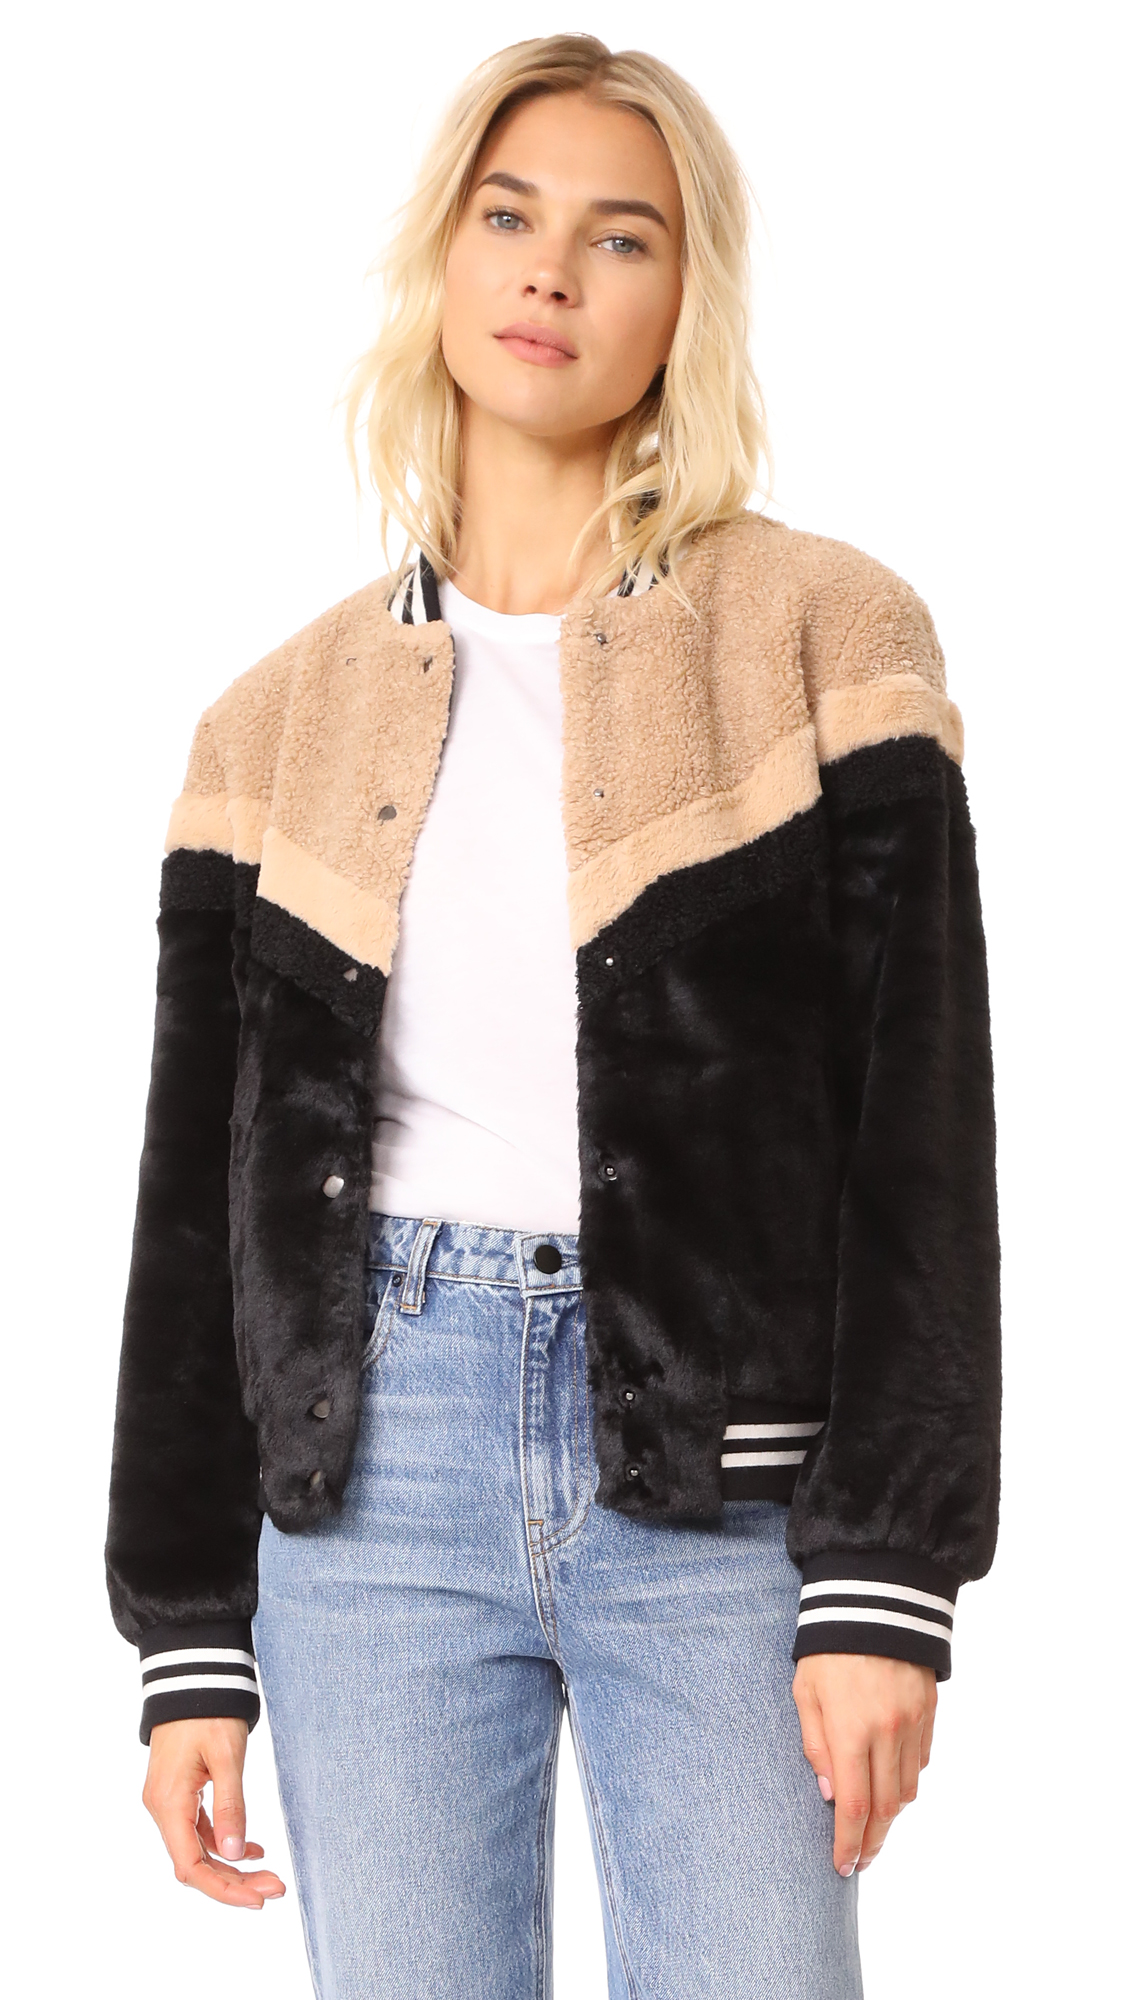 Free People Mixed Faux Fur Bomber - Black